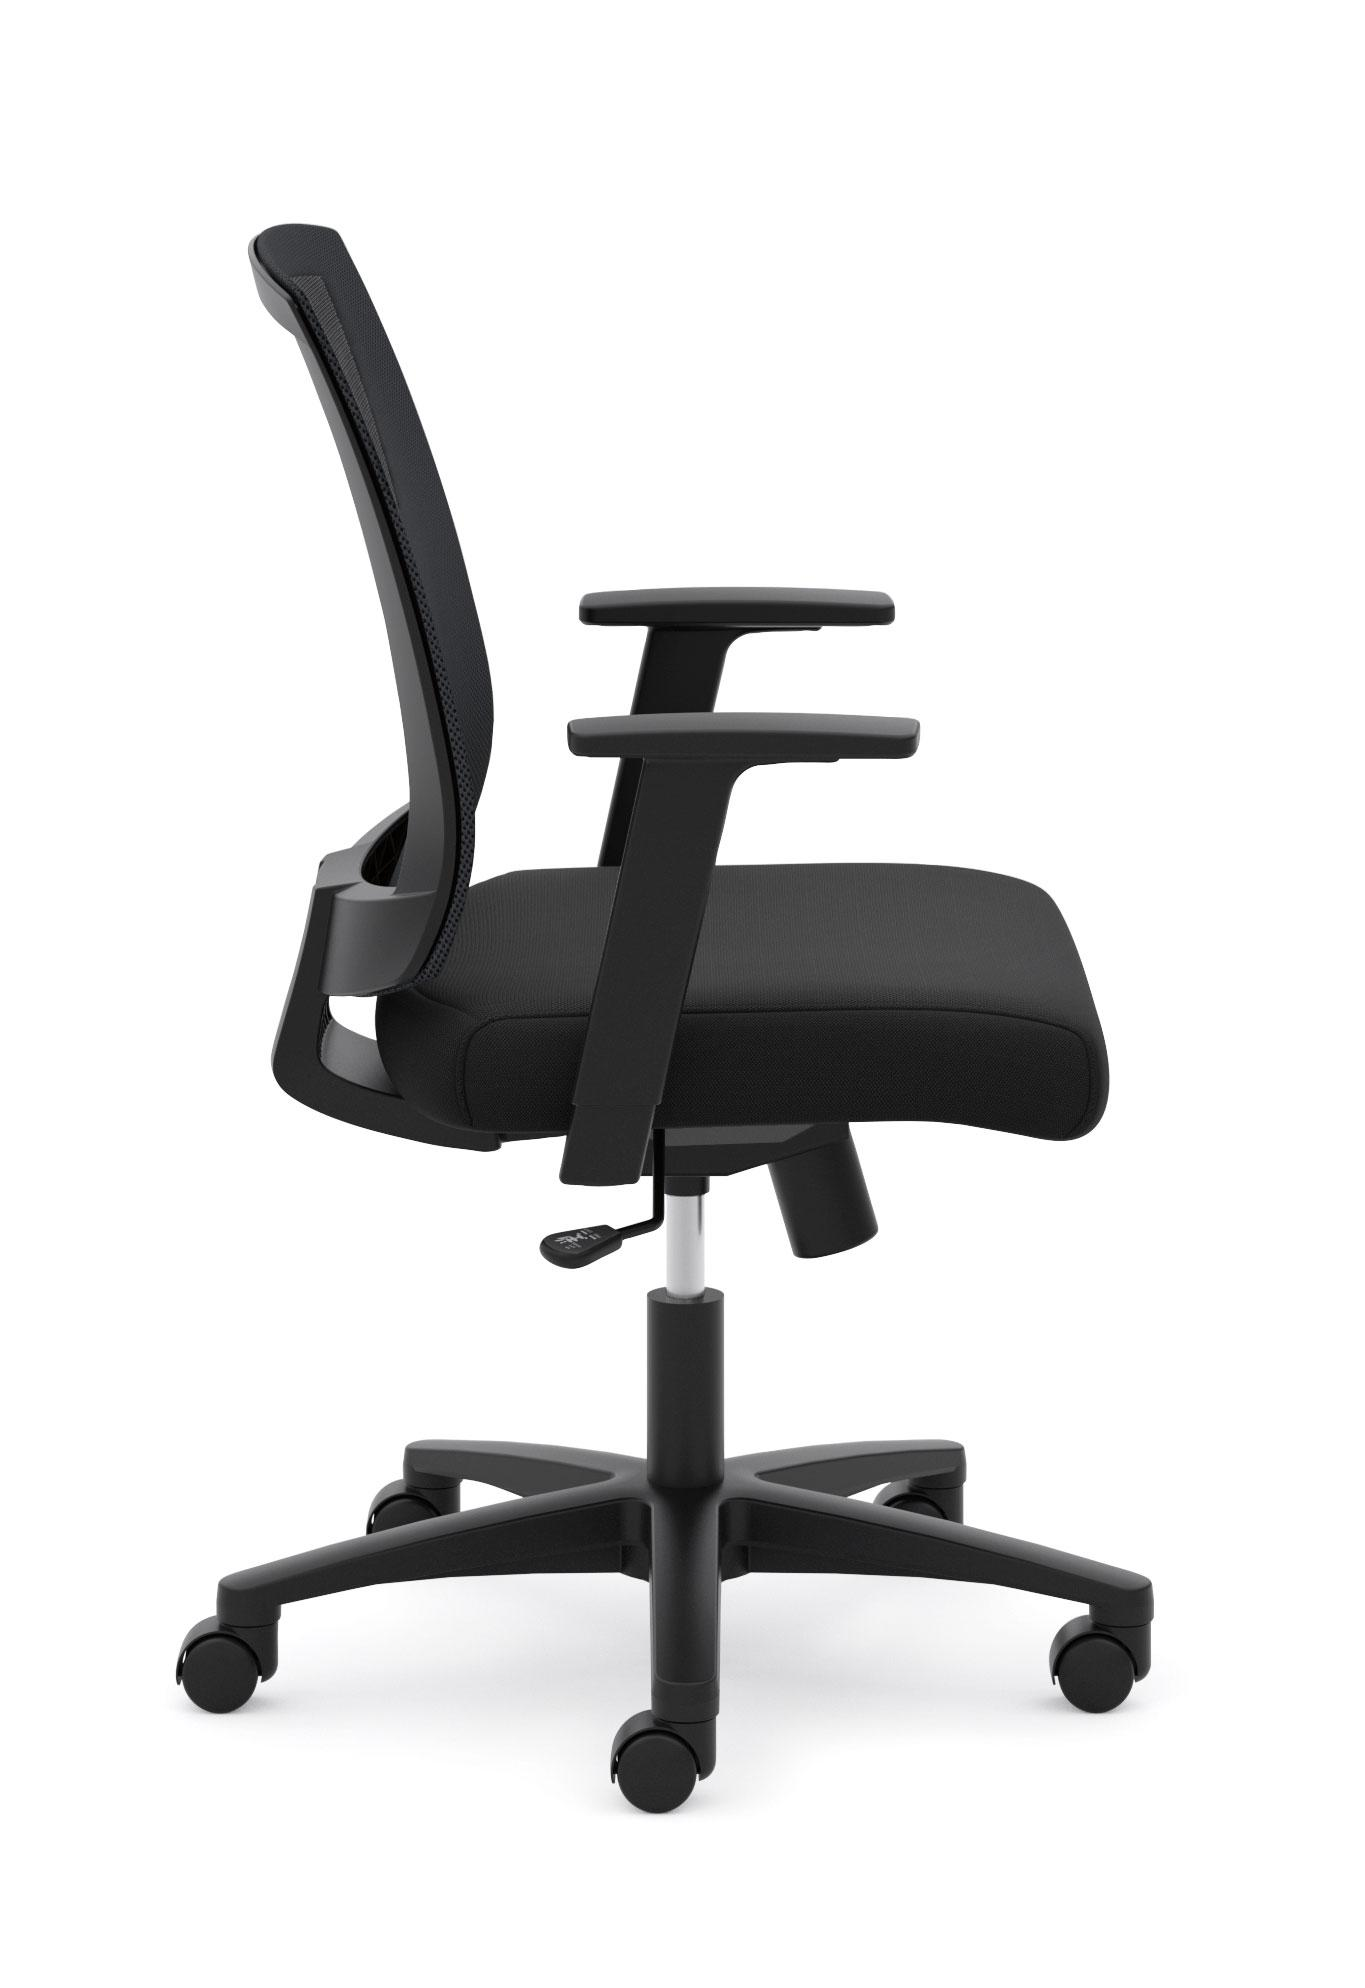 tif to duty pneumatic product chair office by chairs basyx view products black a zoom in hon press and out light task enter